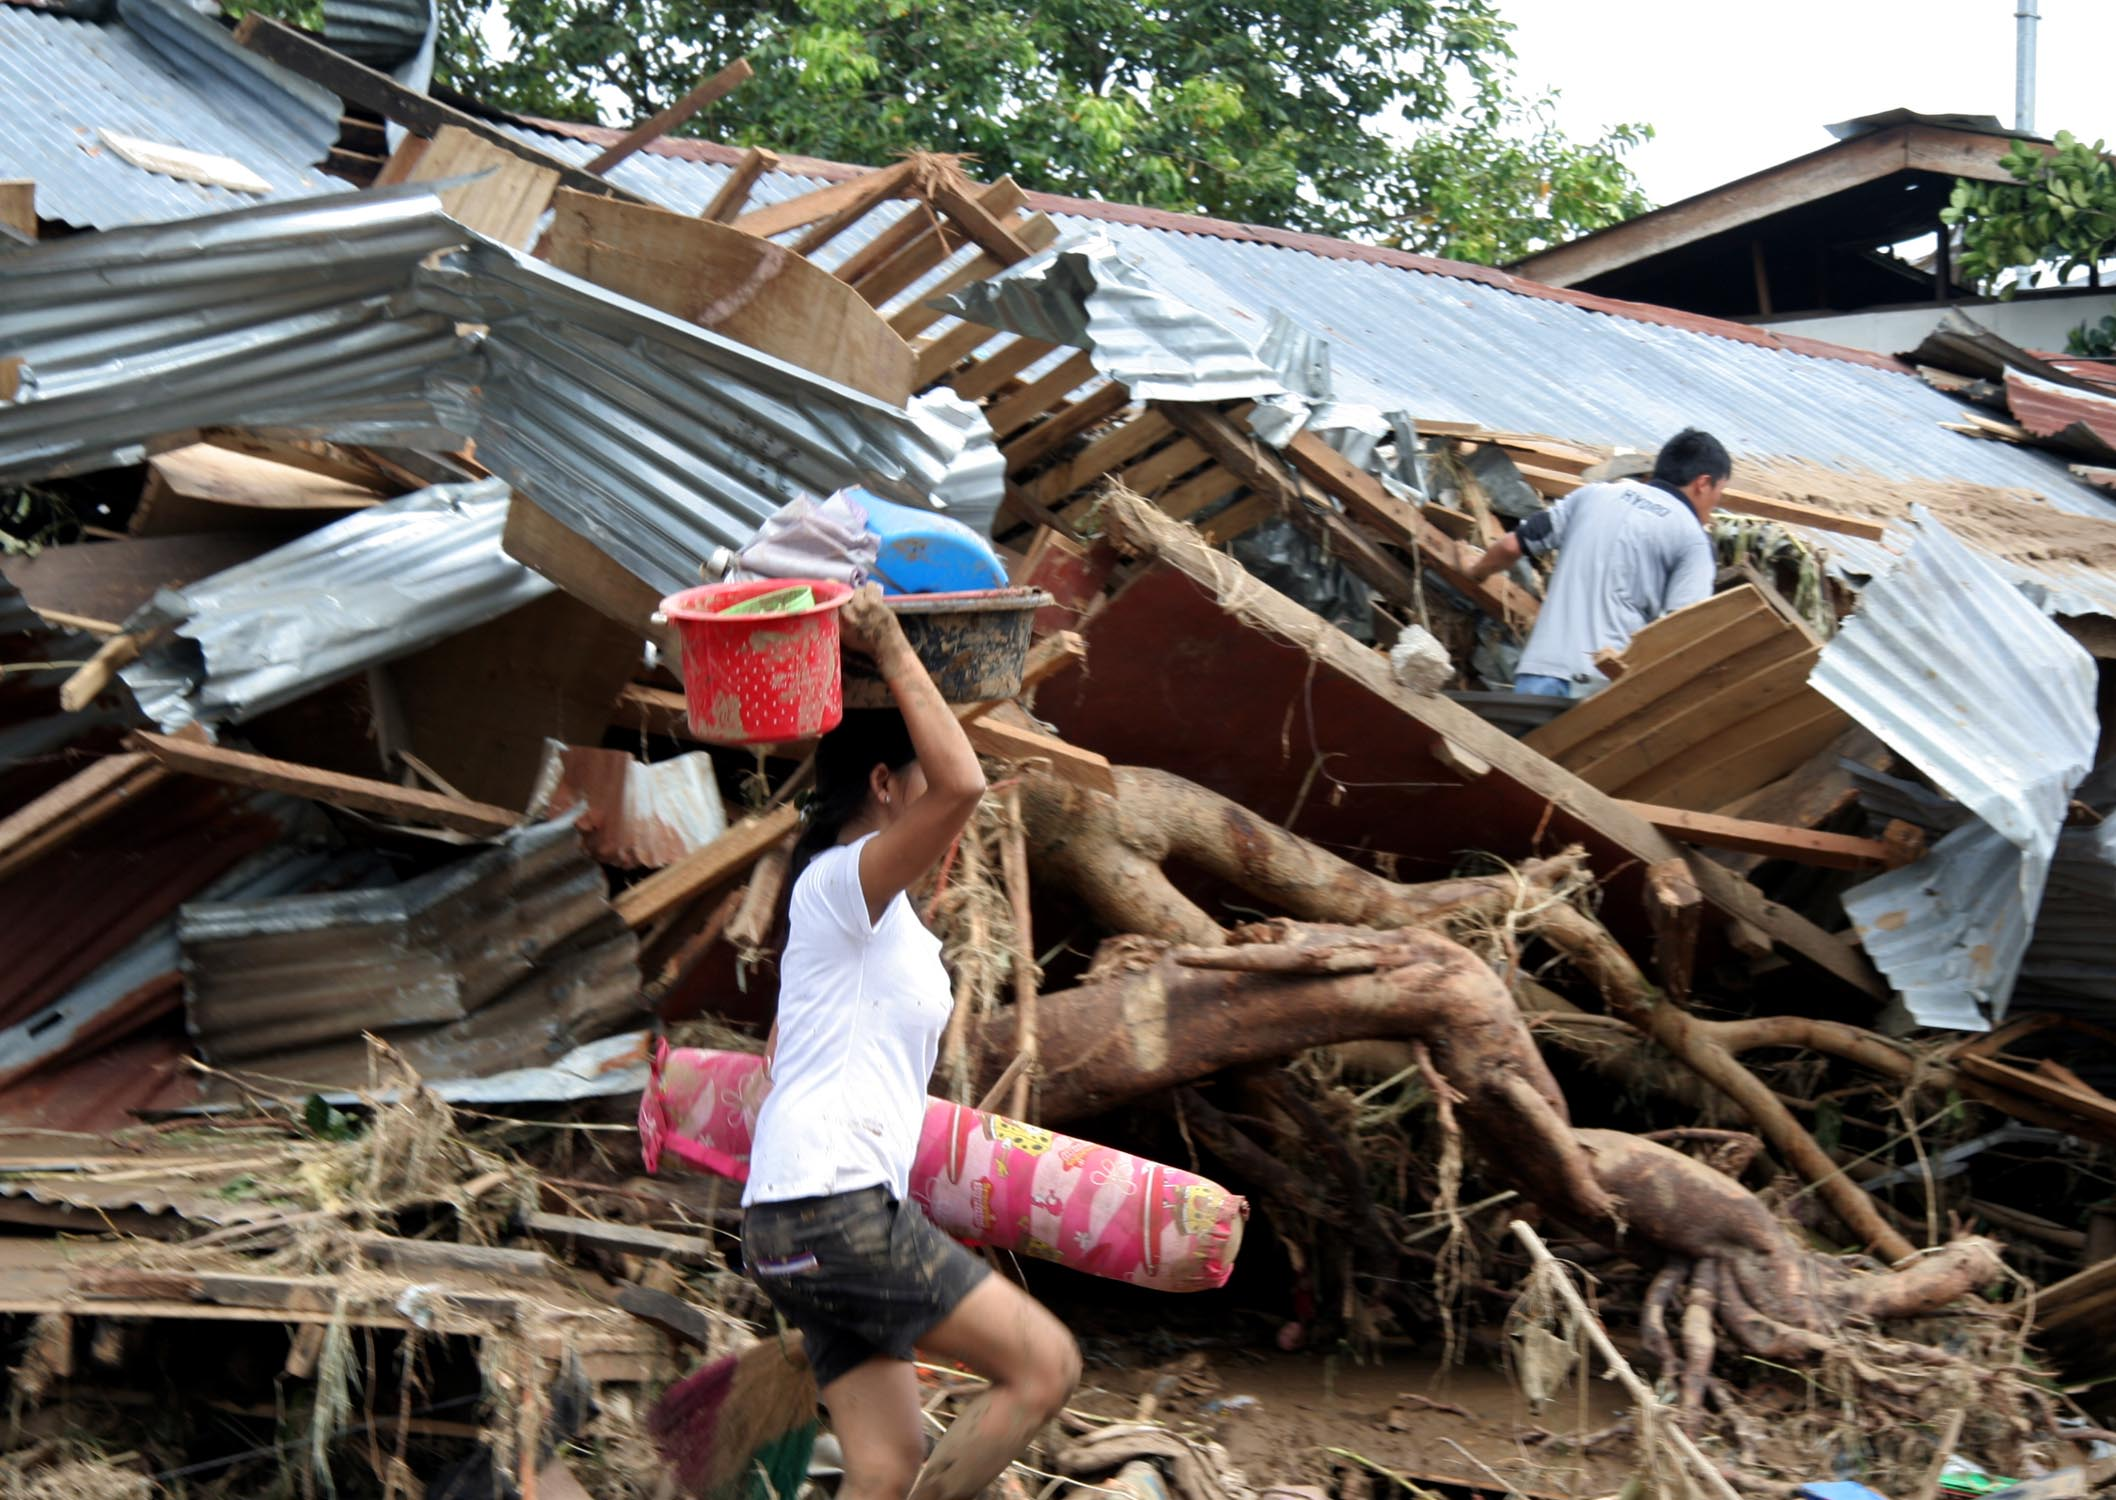 A woman salvages belongings from her ruined village in Mindanao. More than 600 people lost their lives when Tropical Storm Washi struck the island on 16 December 2011